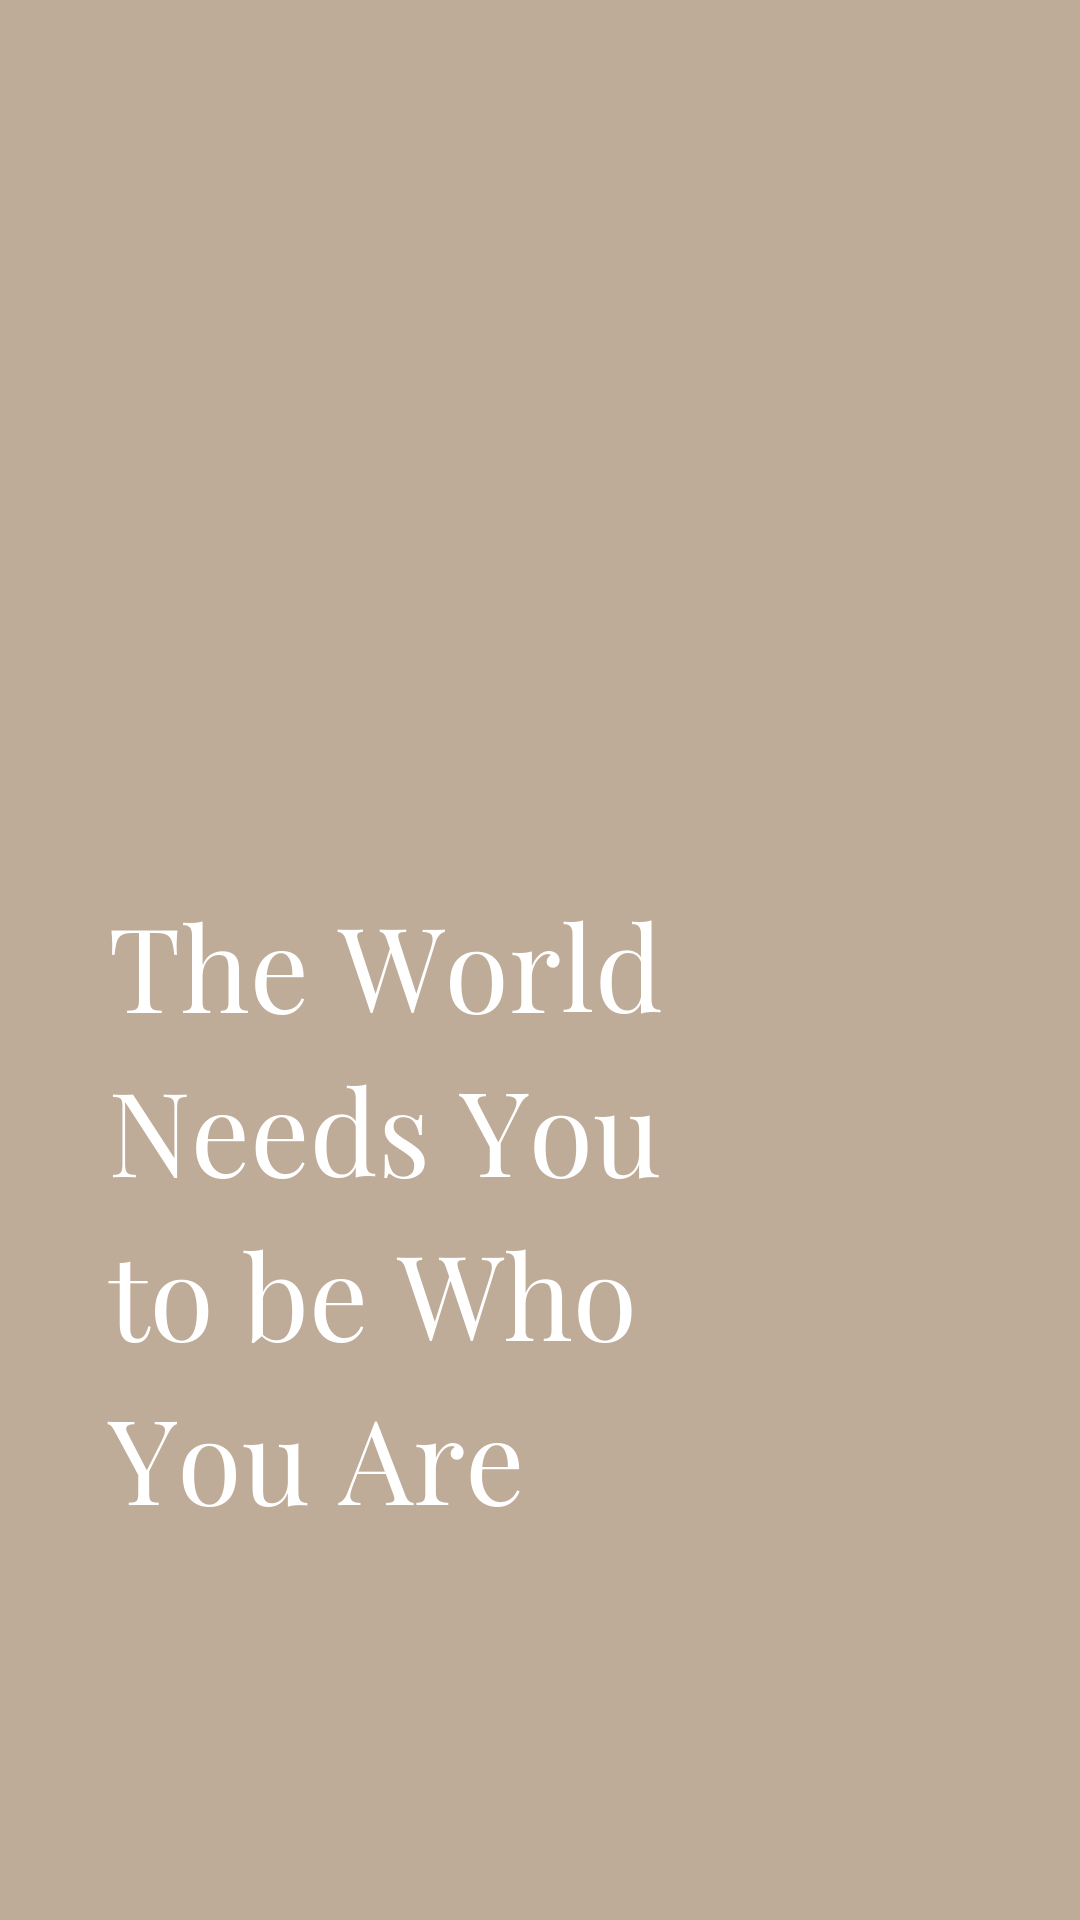 The world needs you to be who you are | Motivational, inspiring quotes for your phone screen background | Miranda Schroeder Blog